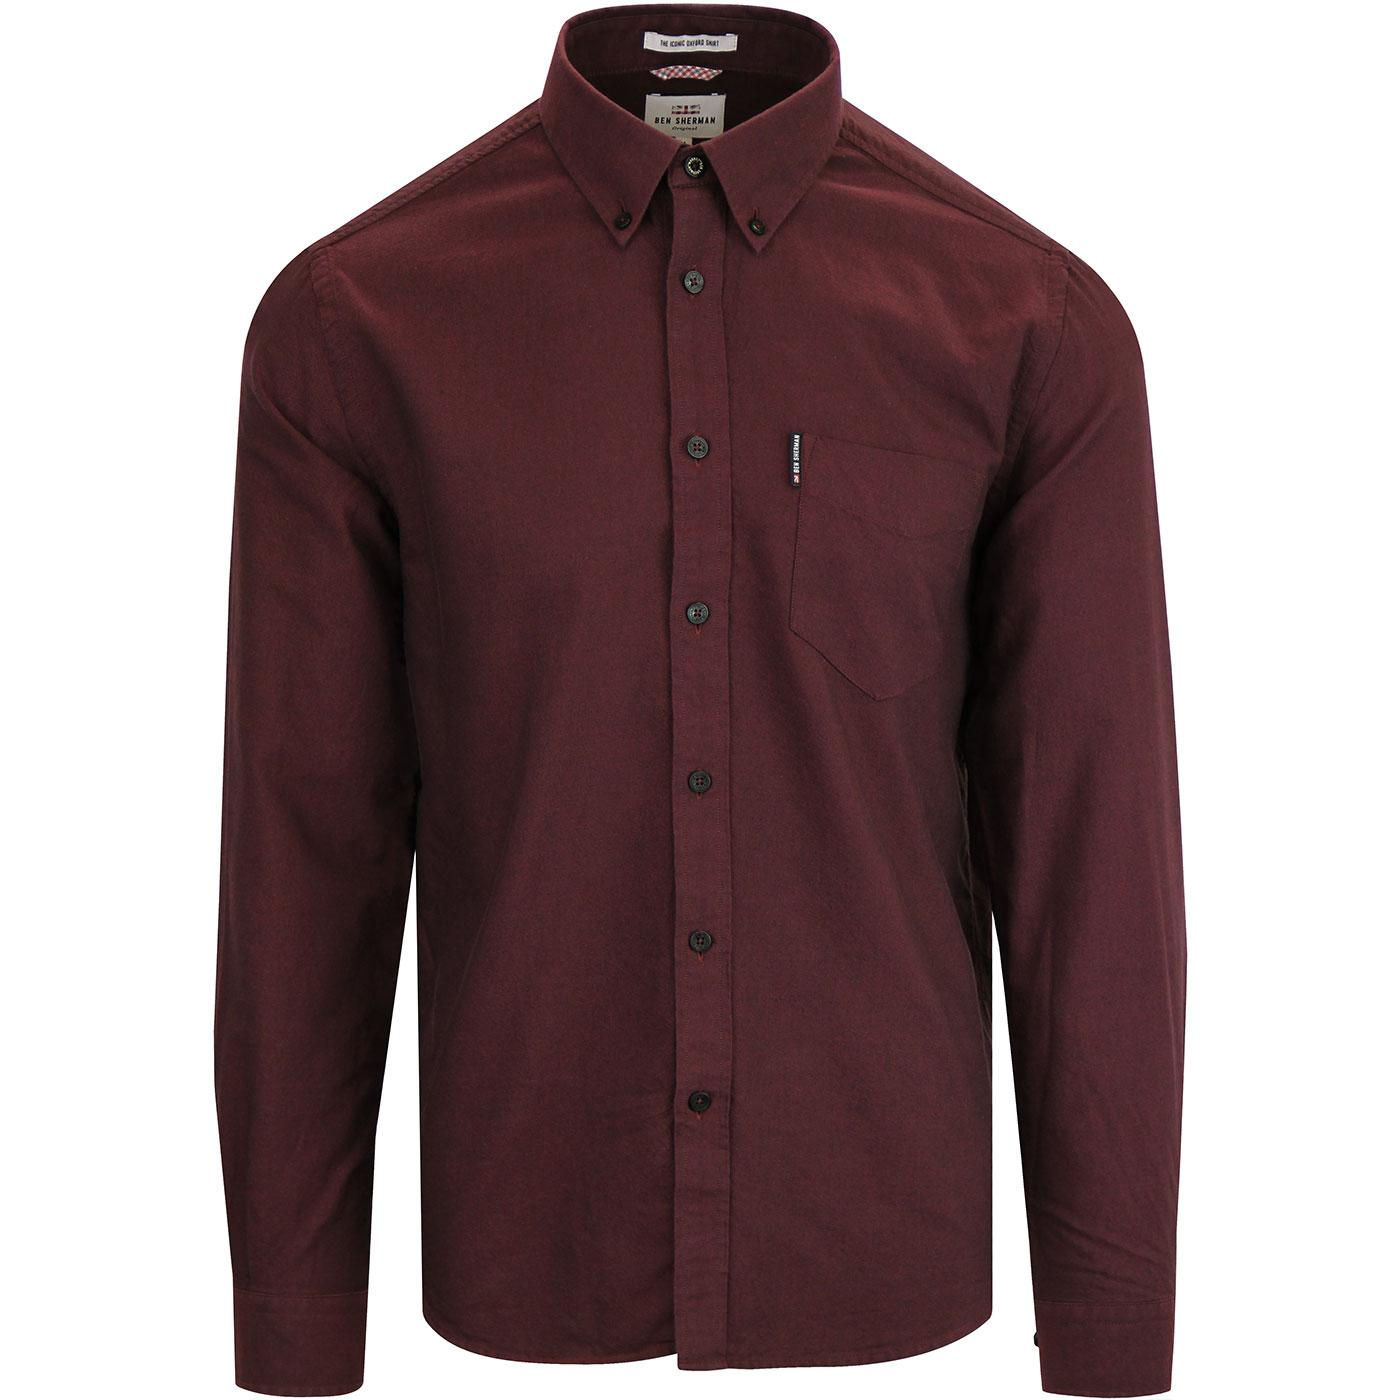 BEN SHERMAN Mod Button Down Oxford Shirt WINE